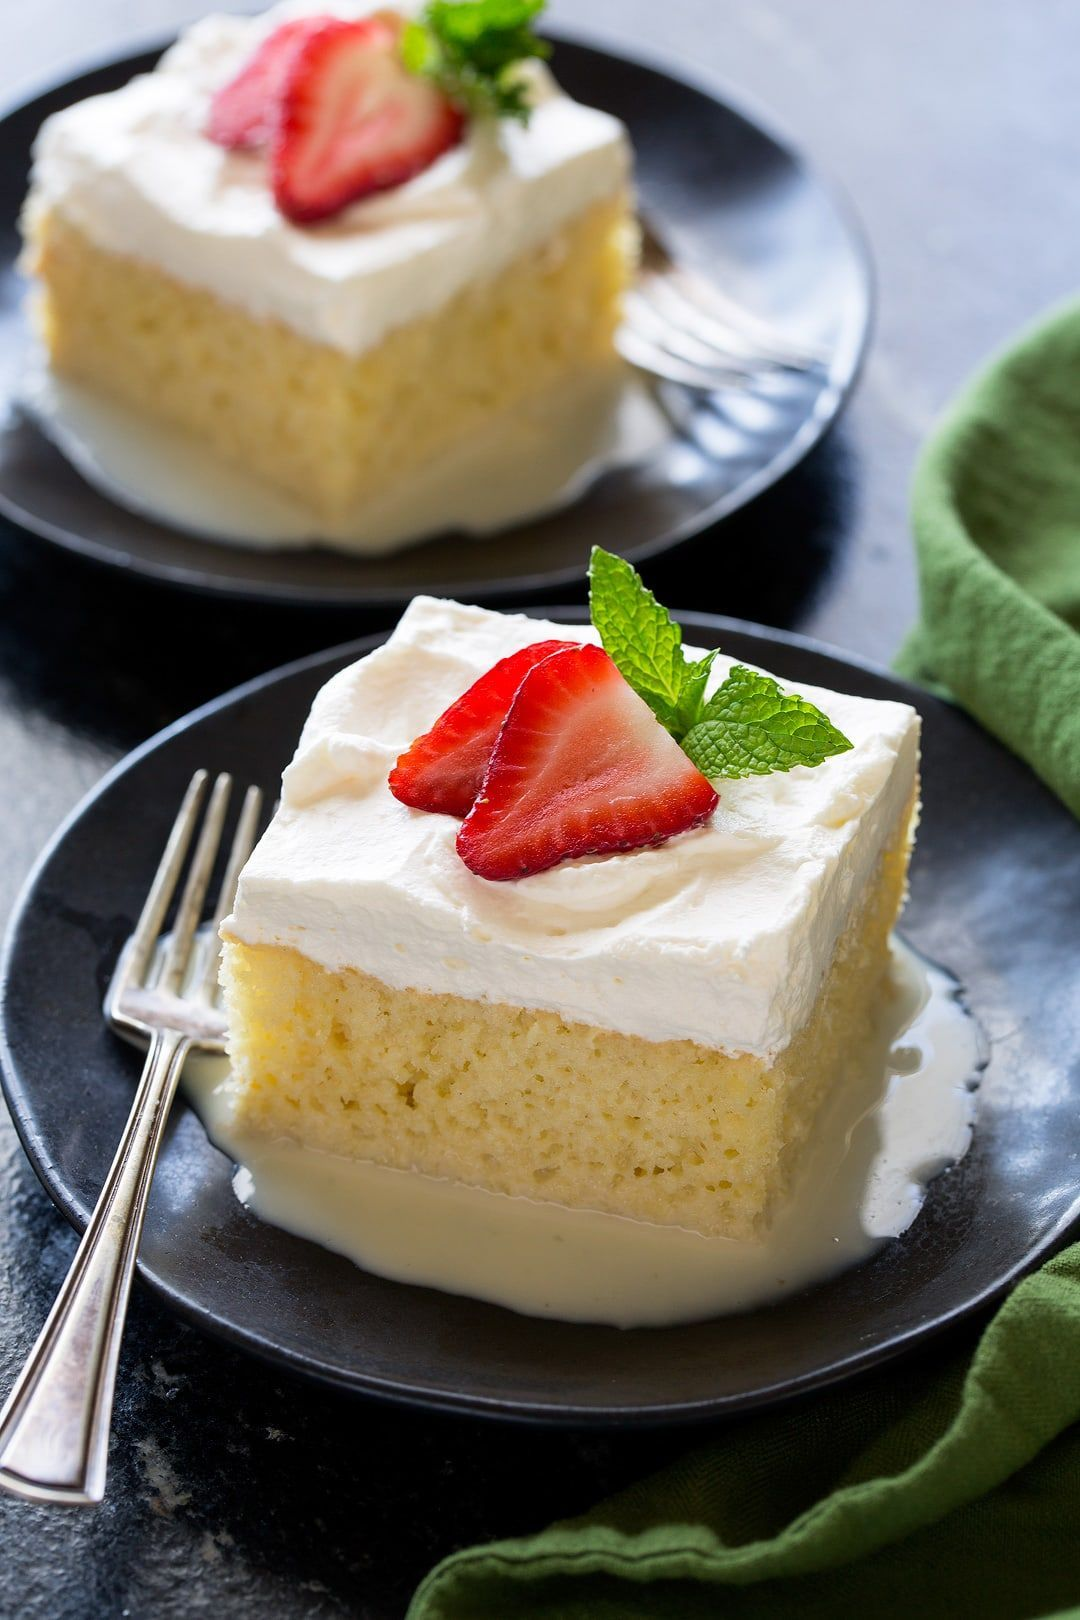 Slice of Tres Leches Cake on a small black dessert plate. Cake is a creamy yellow color with a white whipped cream frosting. It's garnished with fresh strawberry slices and mint on top.